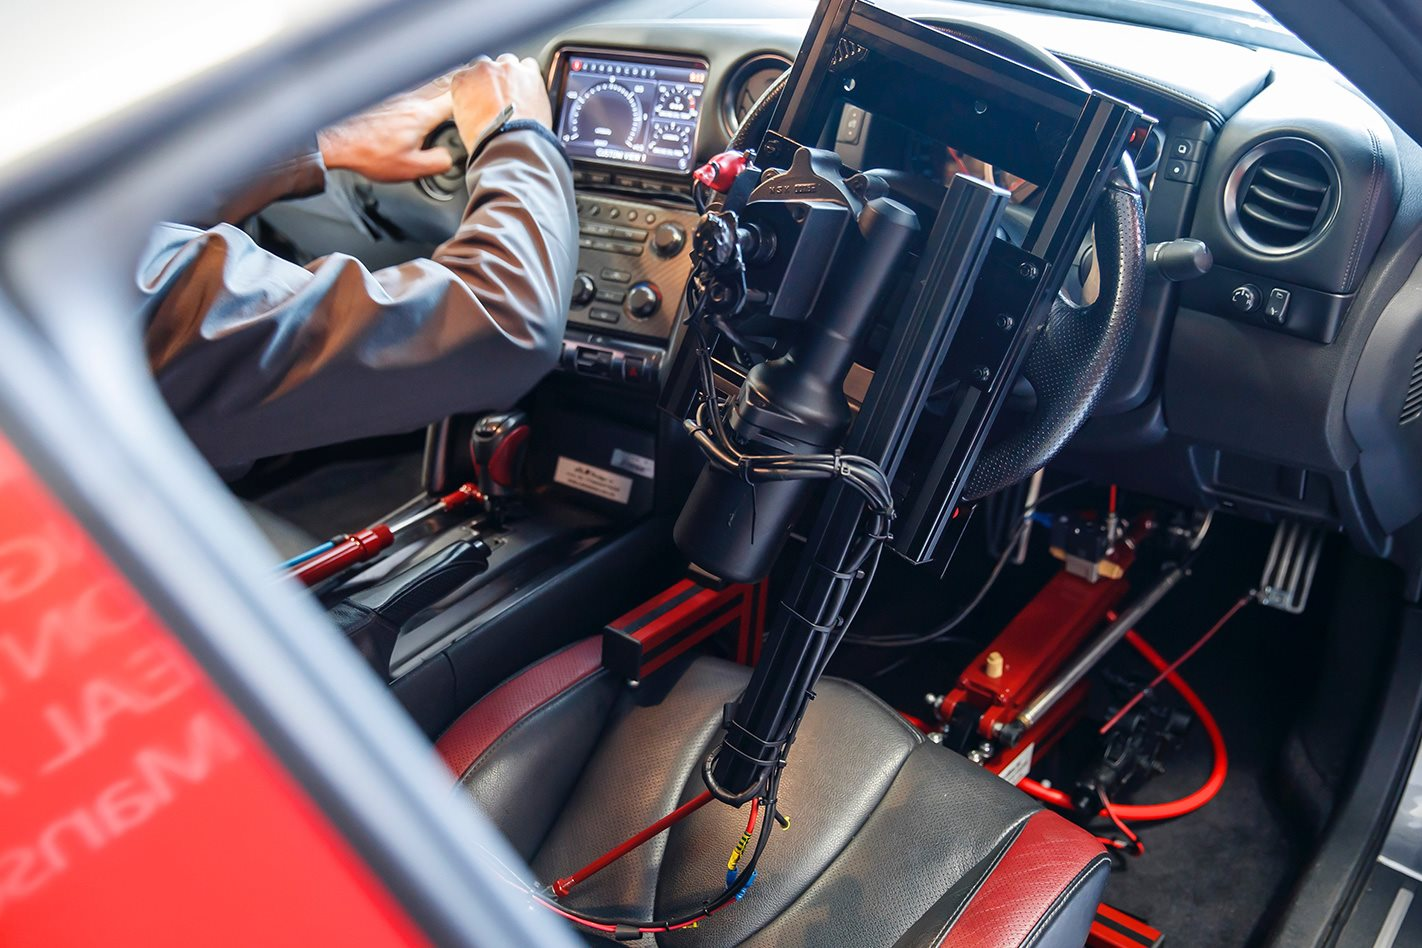 Meet the world's first PS4 controller-operated Nissan GT-R